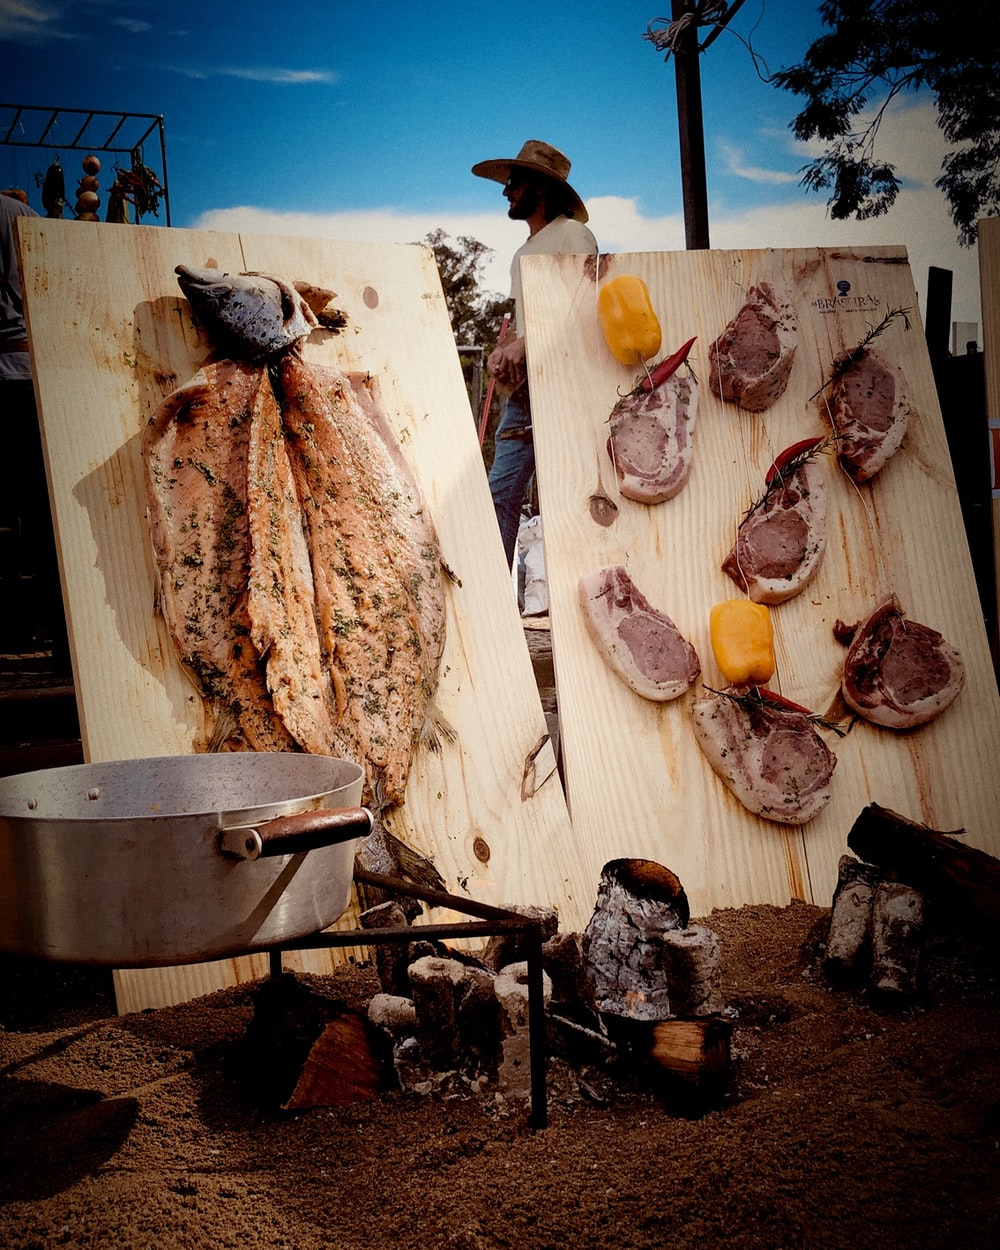 two varieties of cooked meats